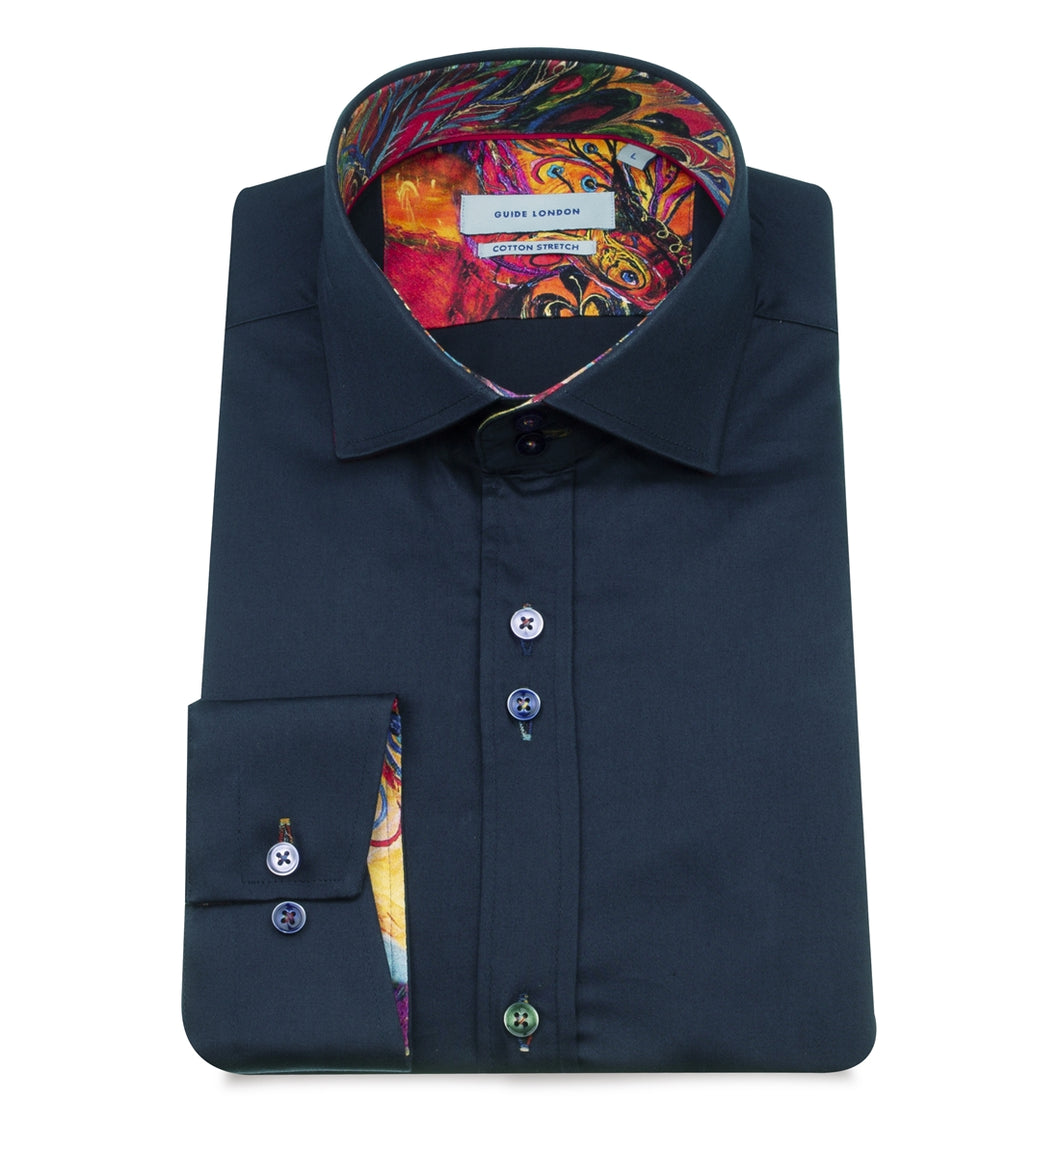 Guide London Stretch Trim Shirt Navy